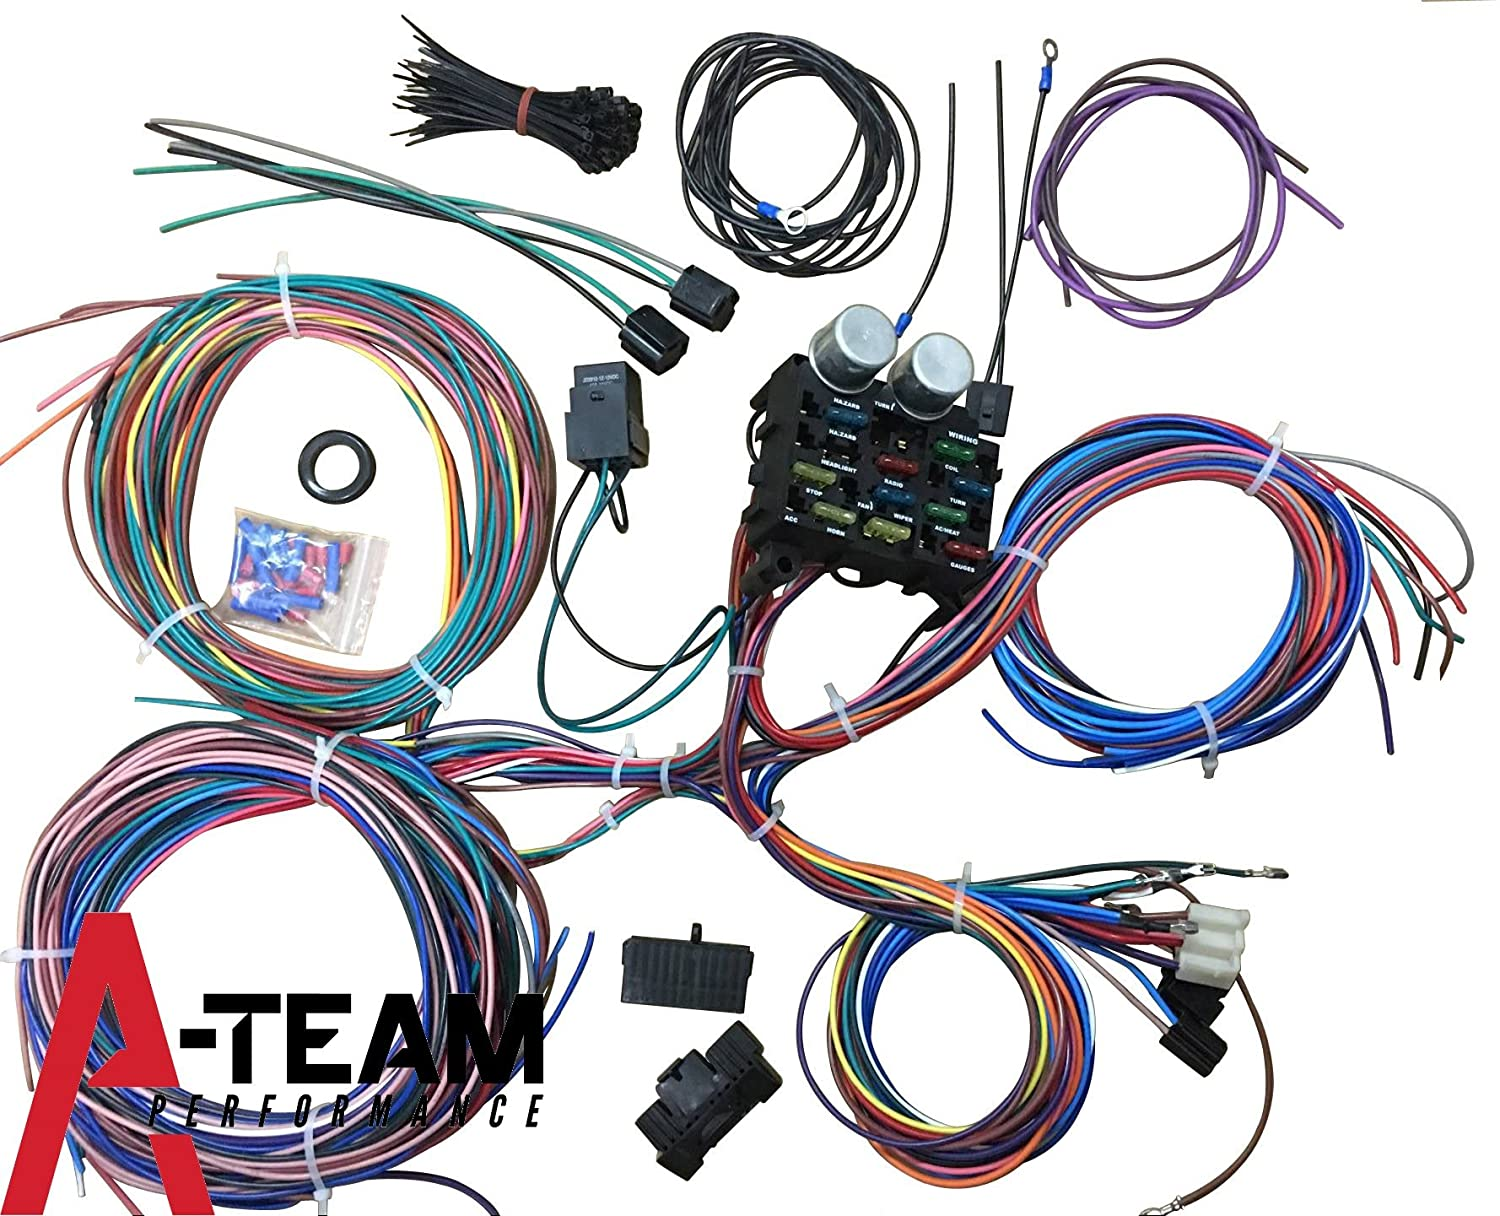 81nvGz8yhML._SL1500_ amazon com mophorn 12 circuit wiring harness 12 fuses universal street rod universal 14 fuse 12-14 circuit wire harness at fashall.co